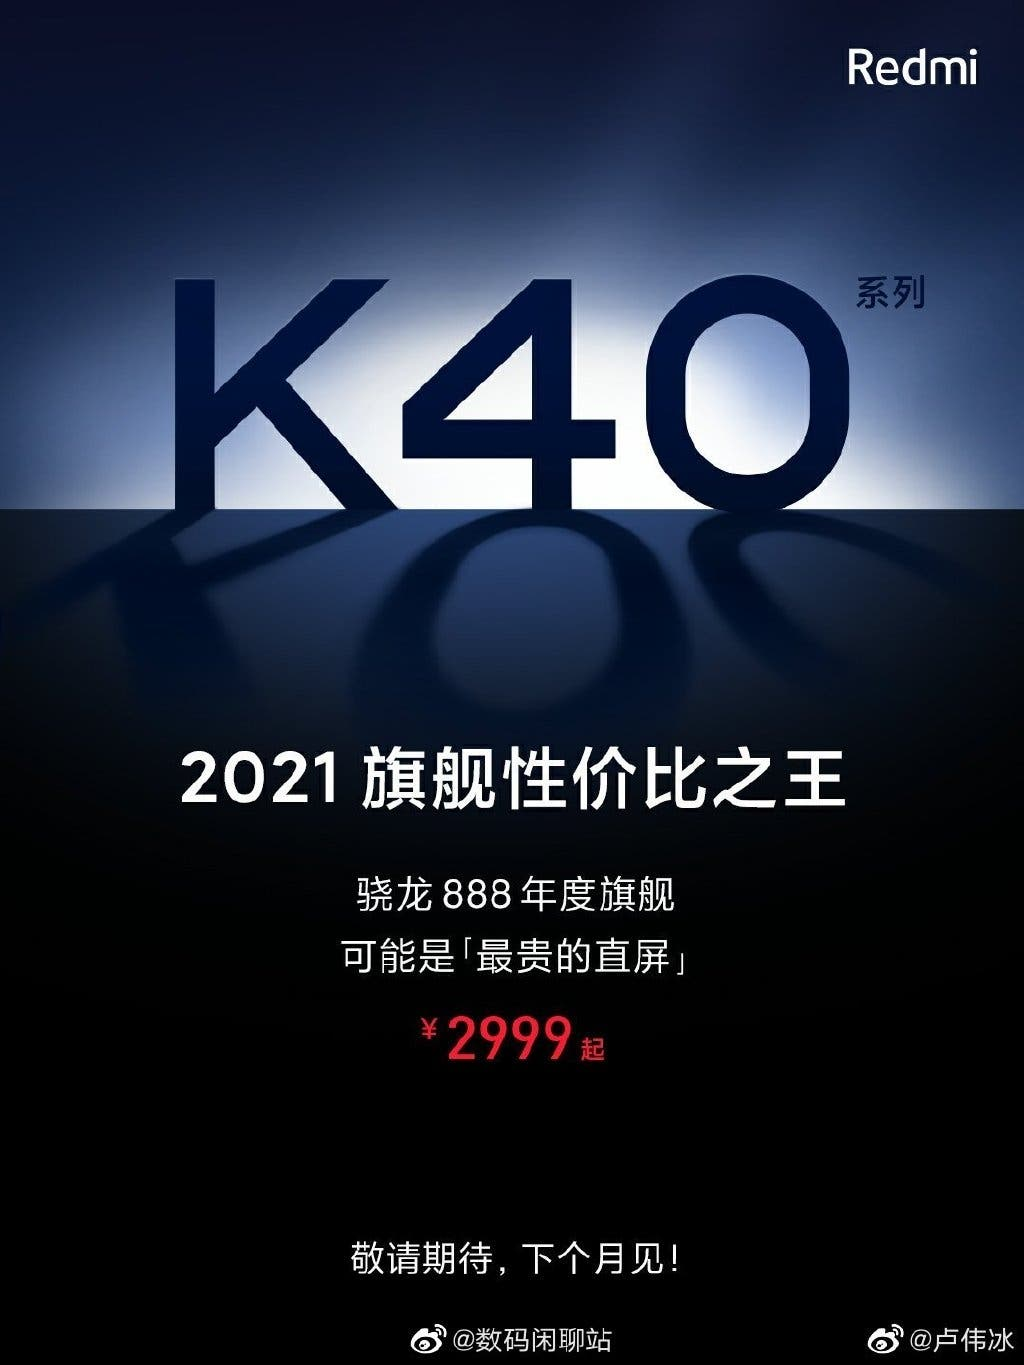 redmi k40 series